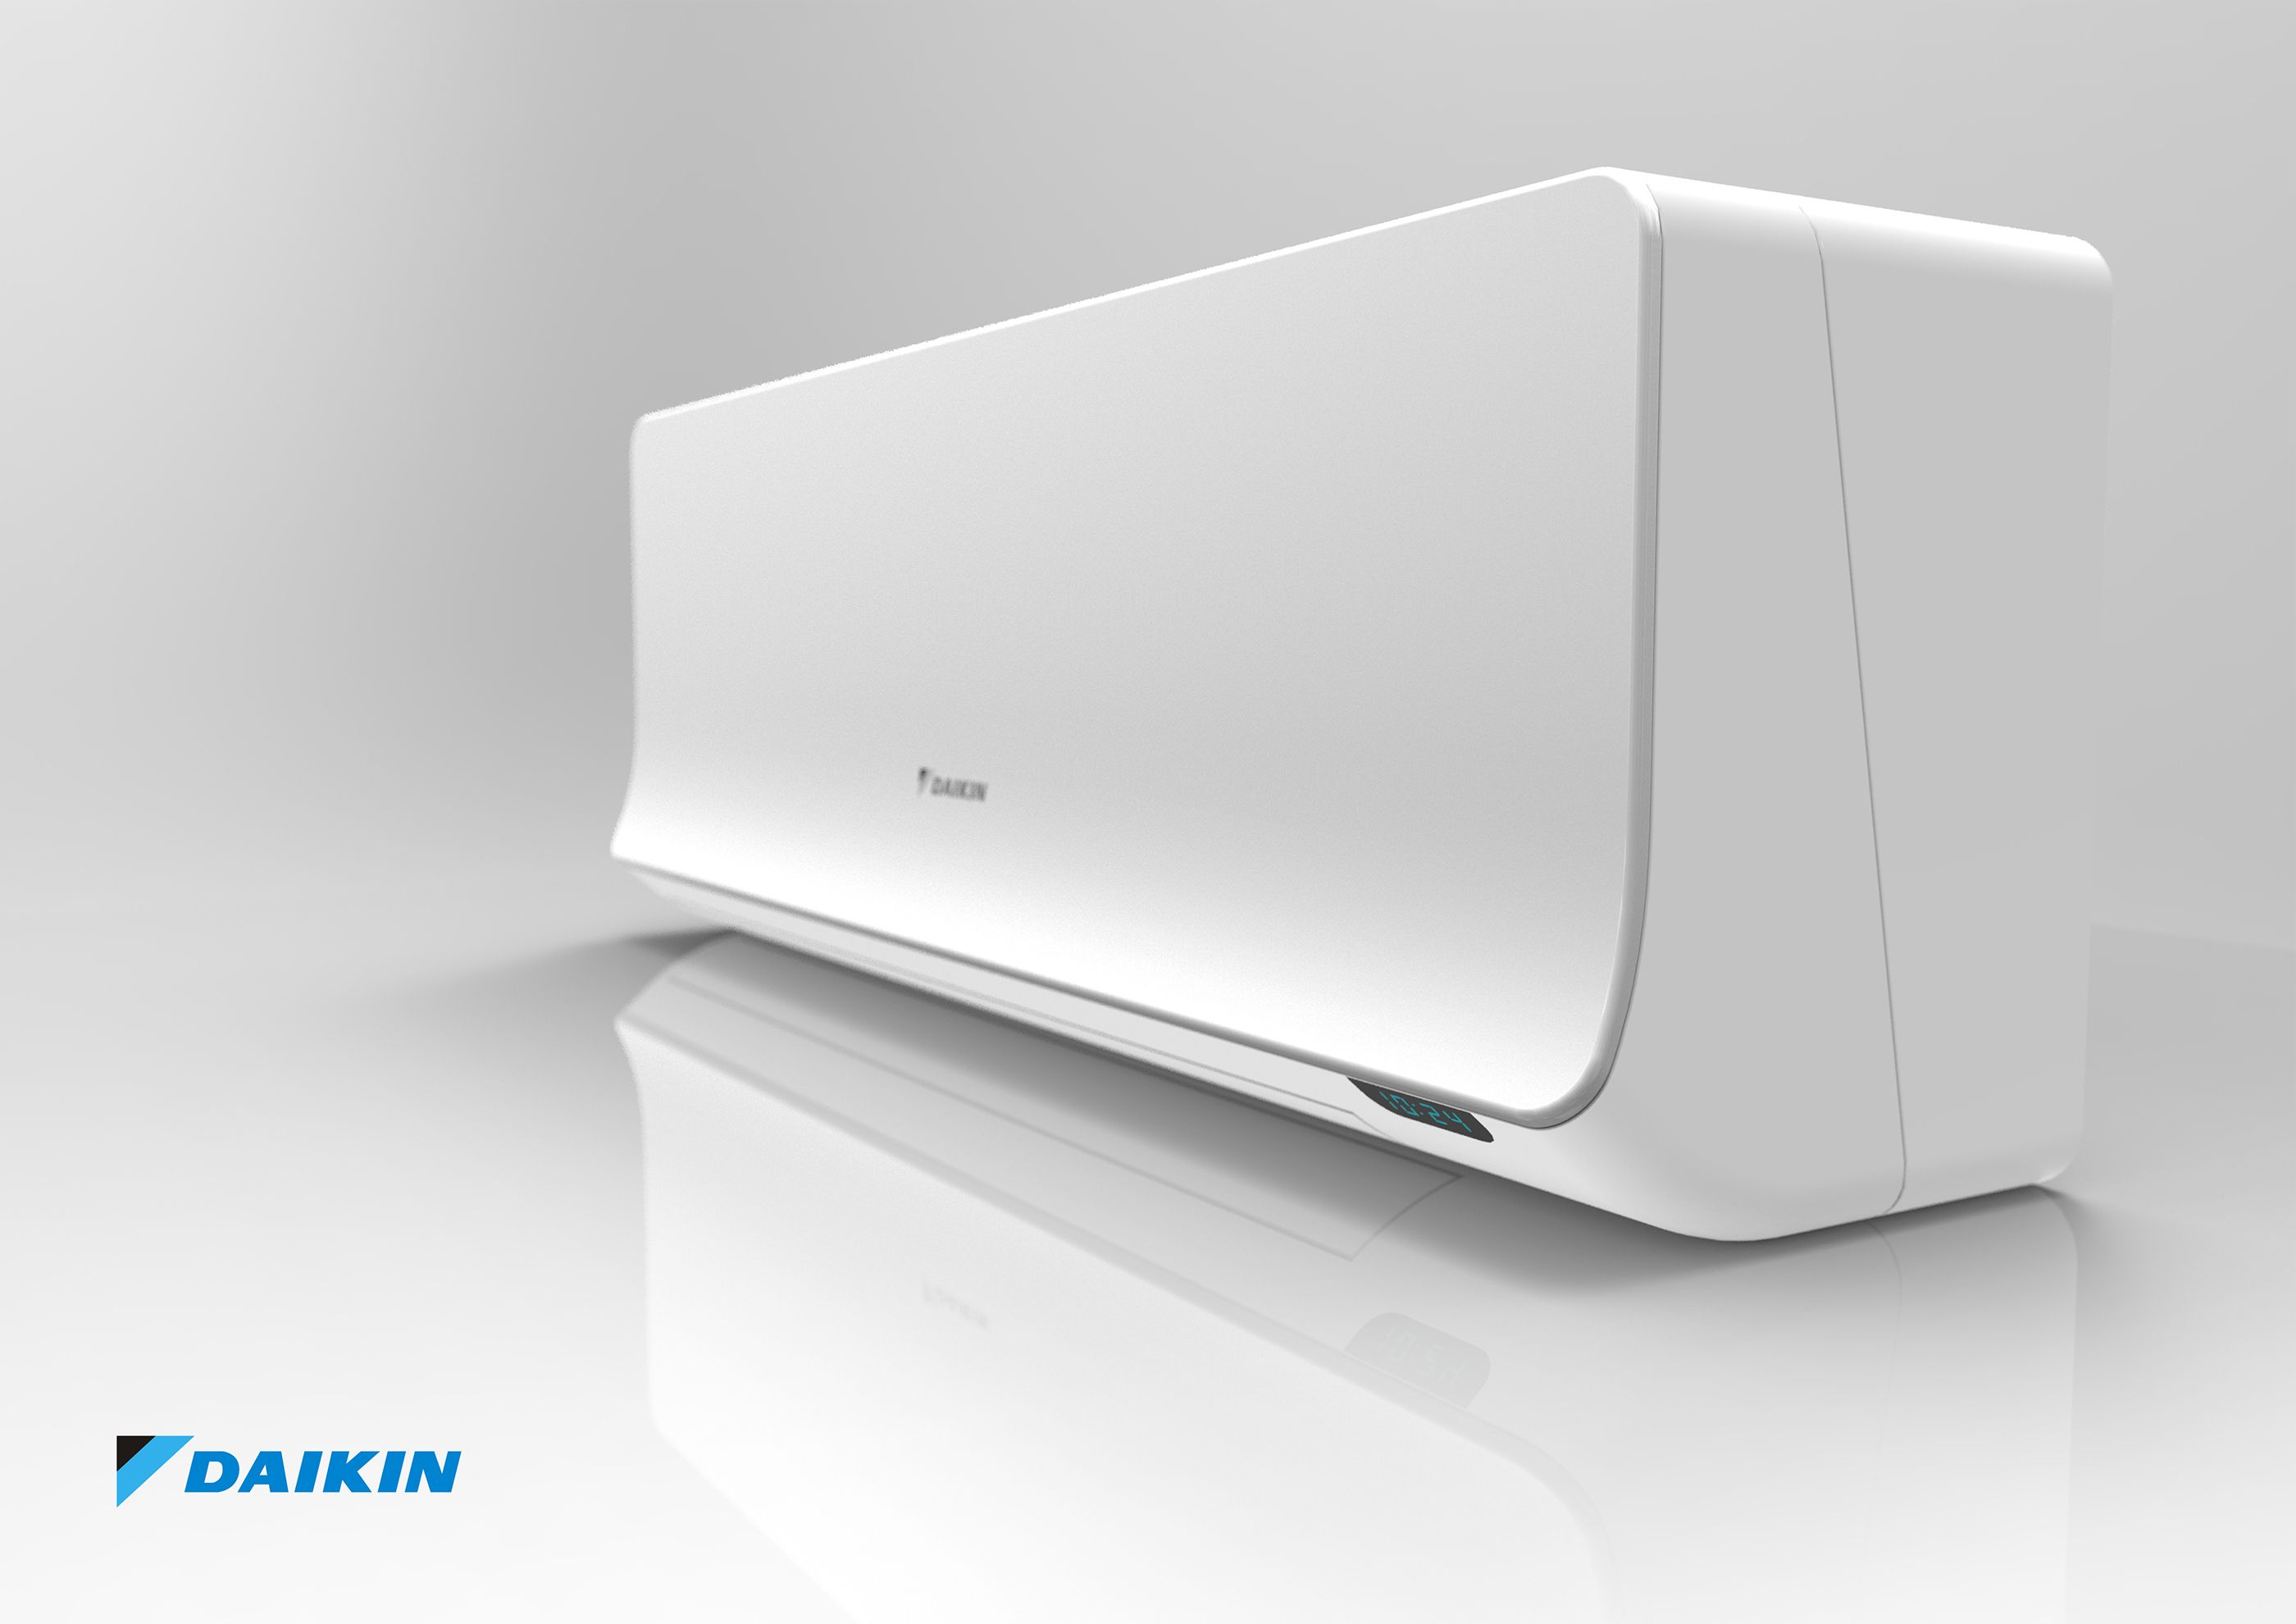 Indoor Air Conditioning for Daikin (2015) on Behance Air